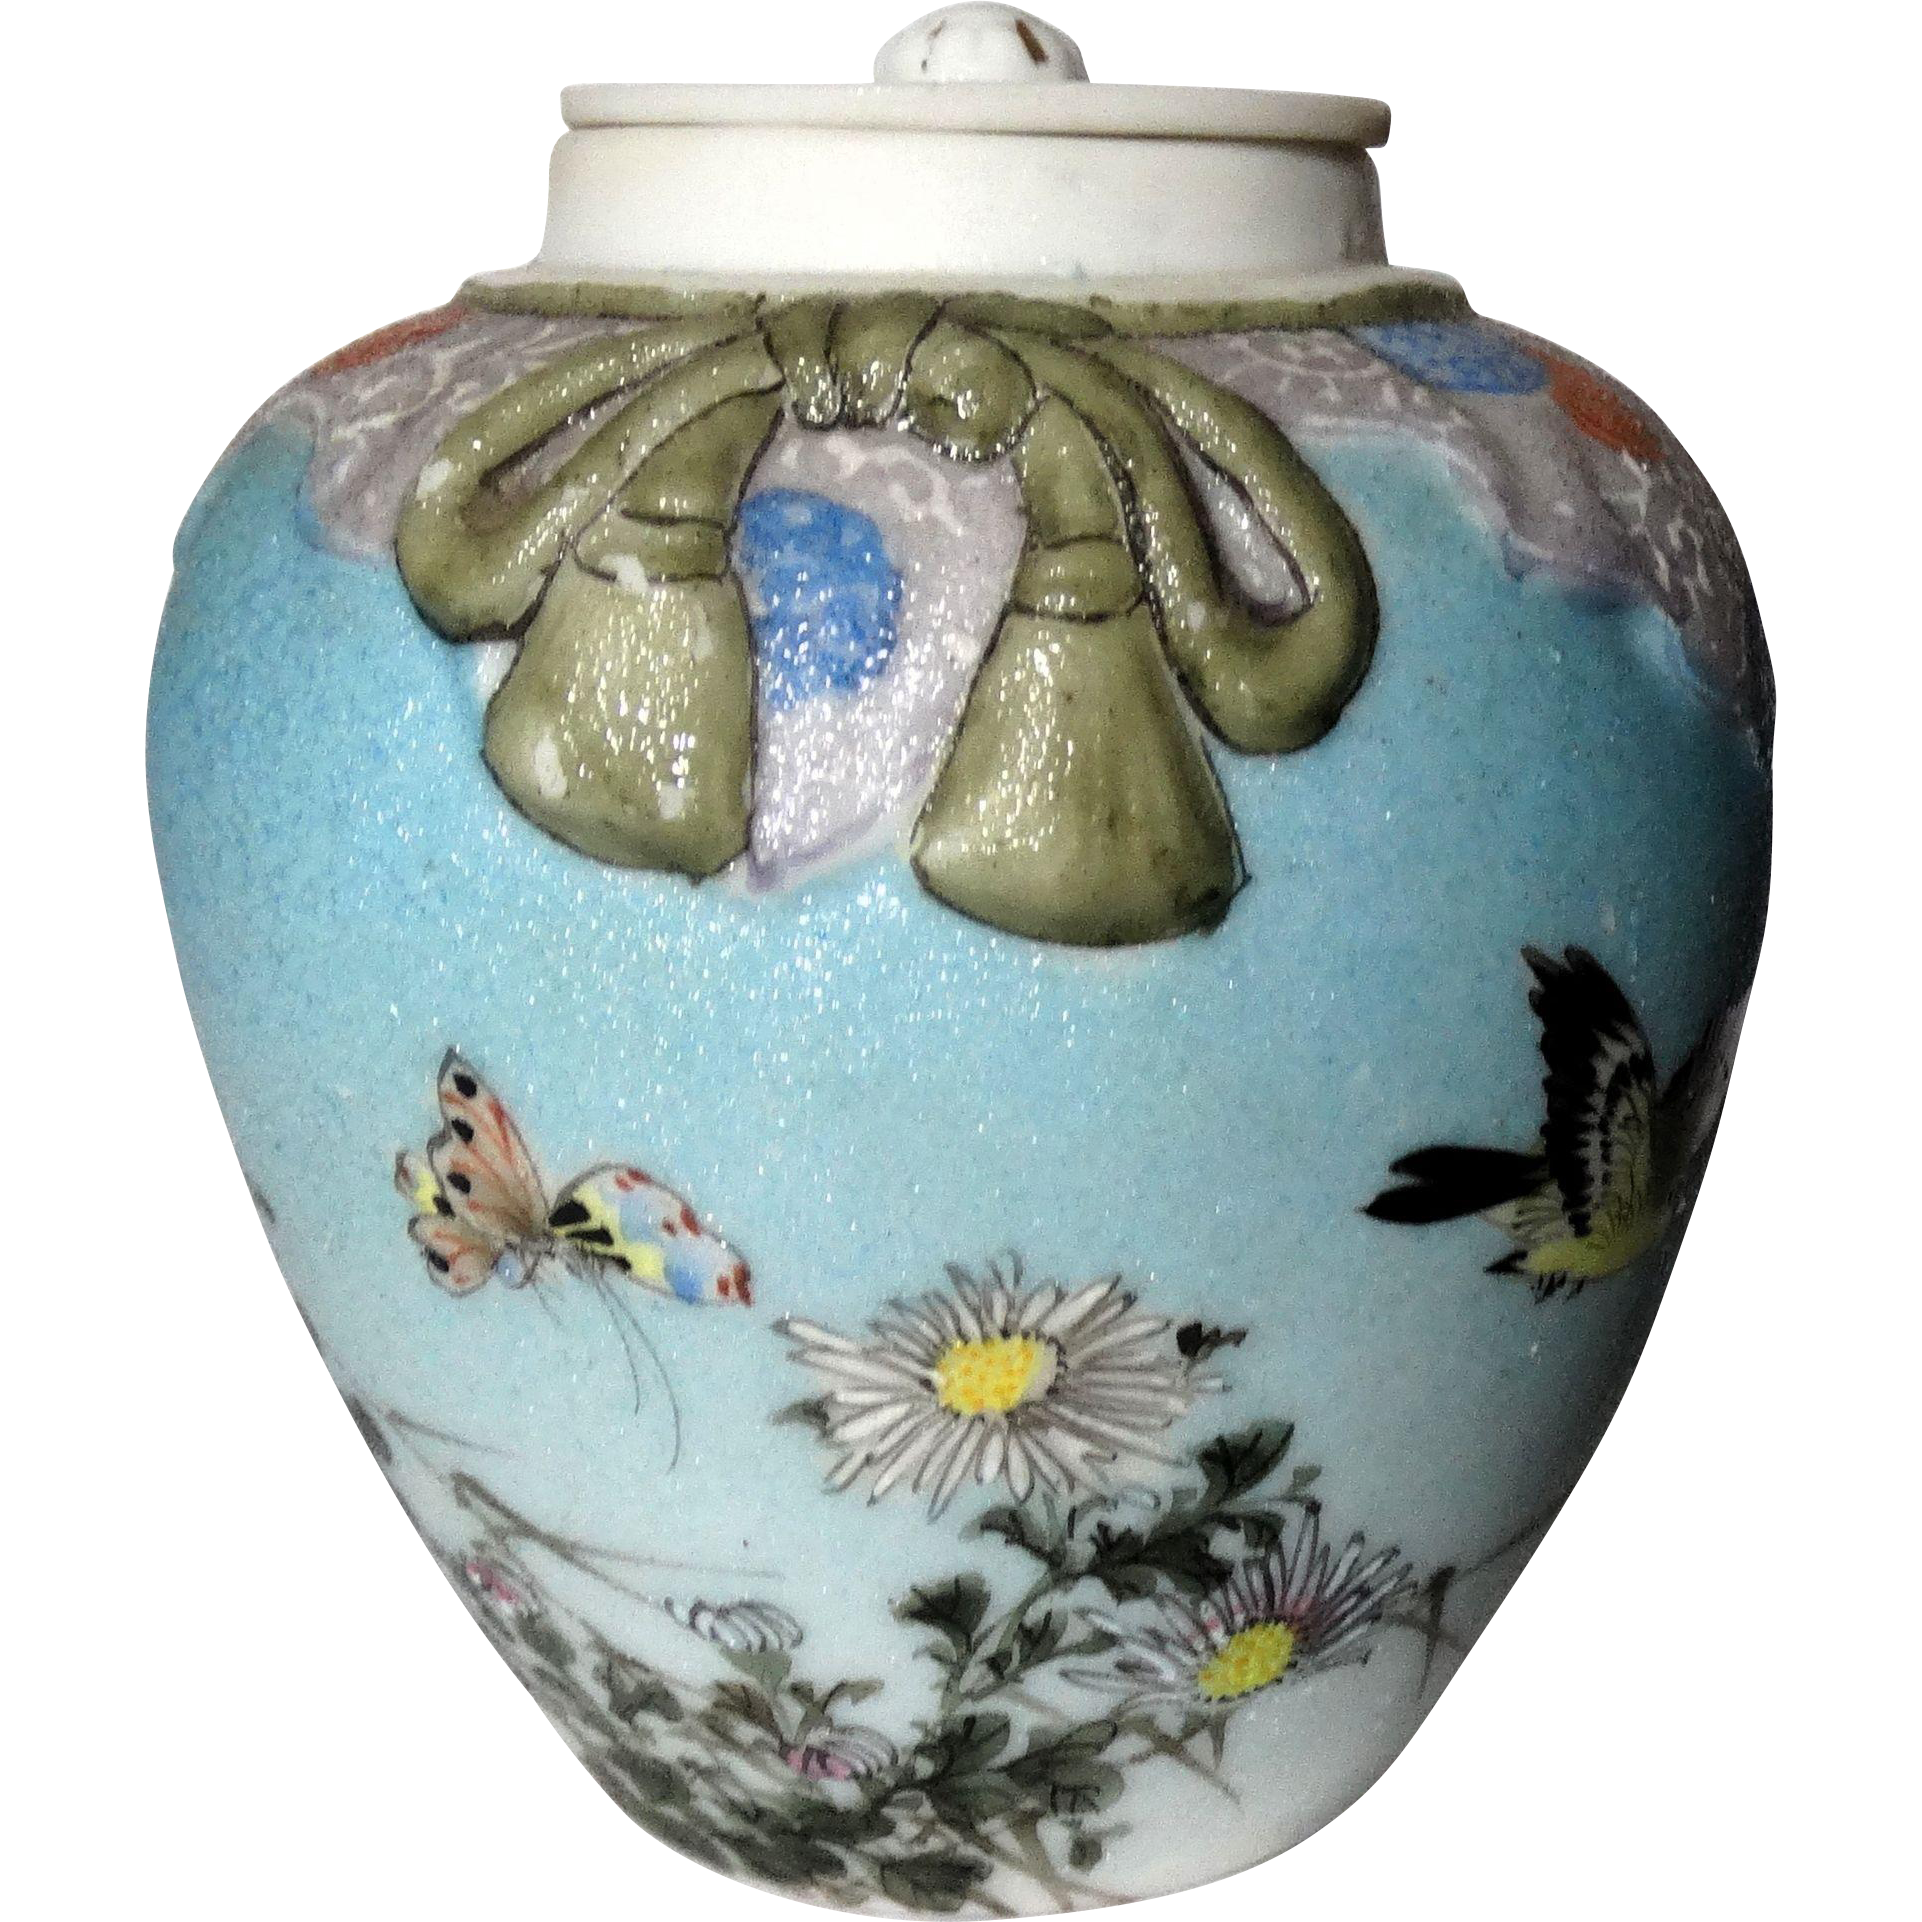 Antique Sharkskin Lidded Jar/Tea Caddy by Japanese Potter Houkokusha, Rare and Beautiful